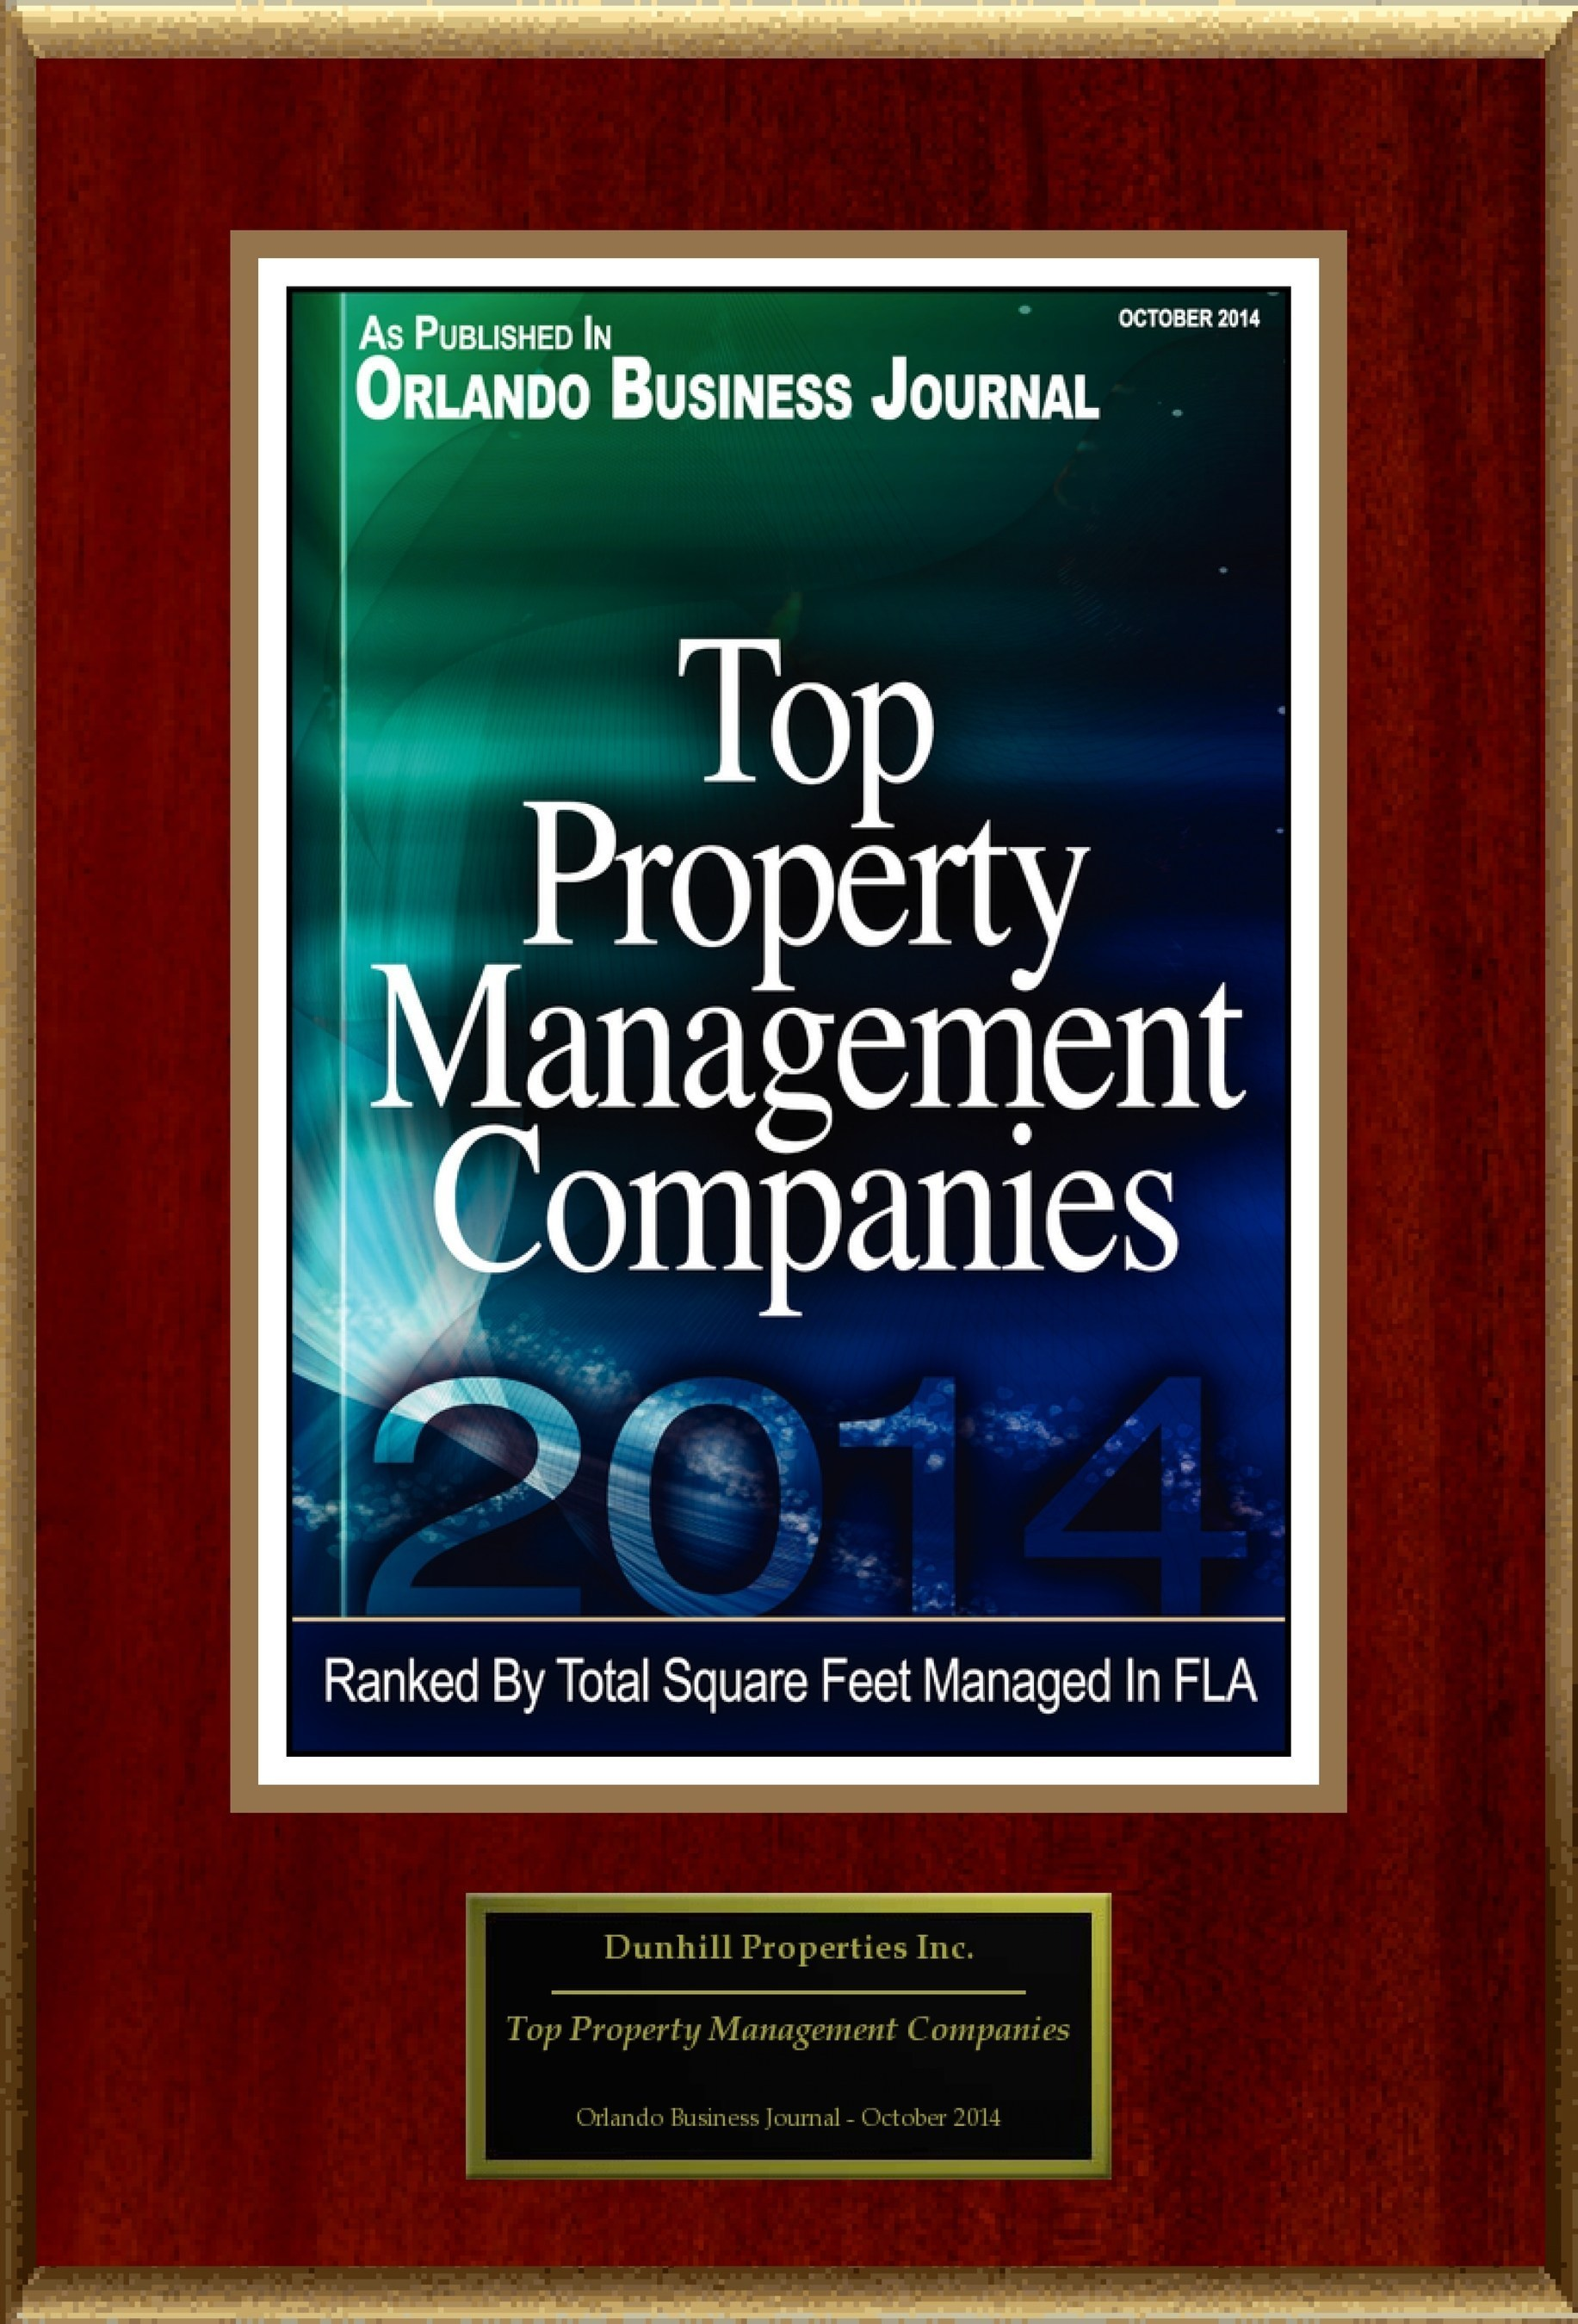 """Dunhill Properties Inc. Selected For """"Top Property Management Companies"""